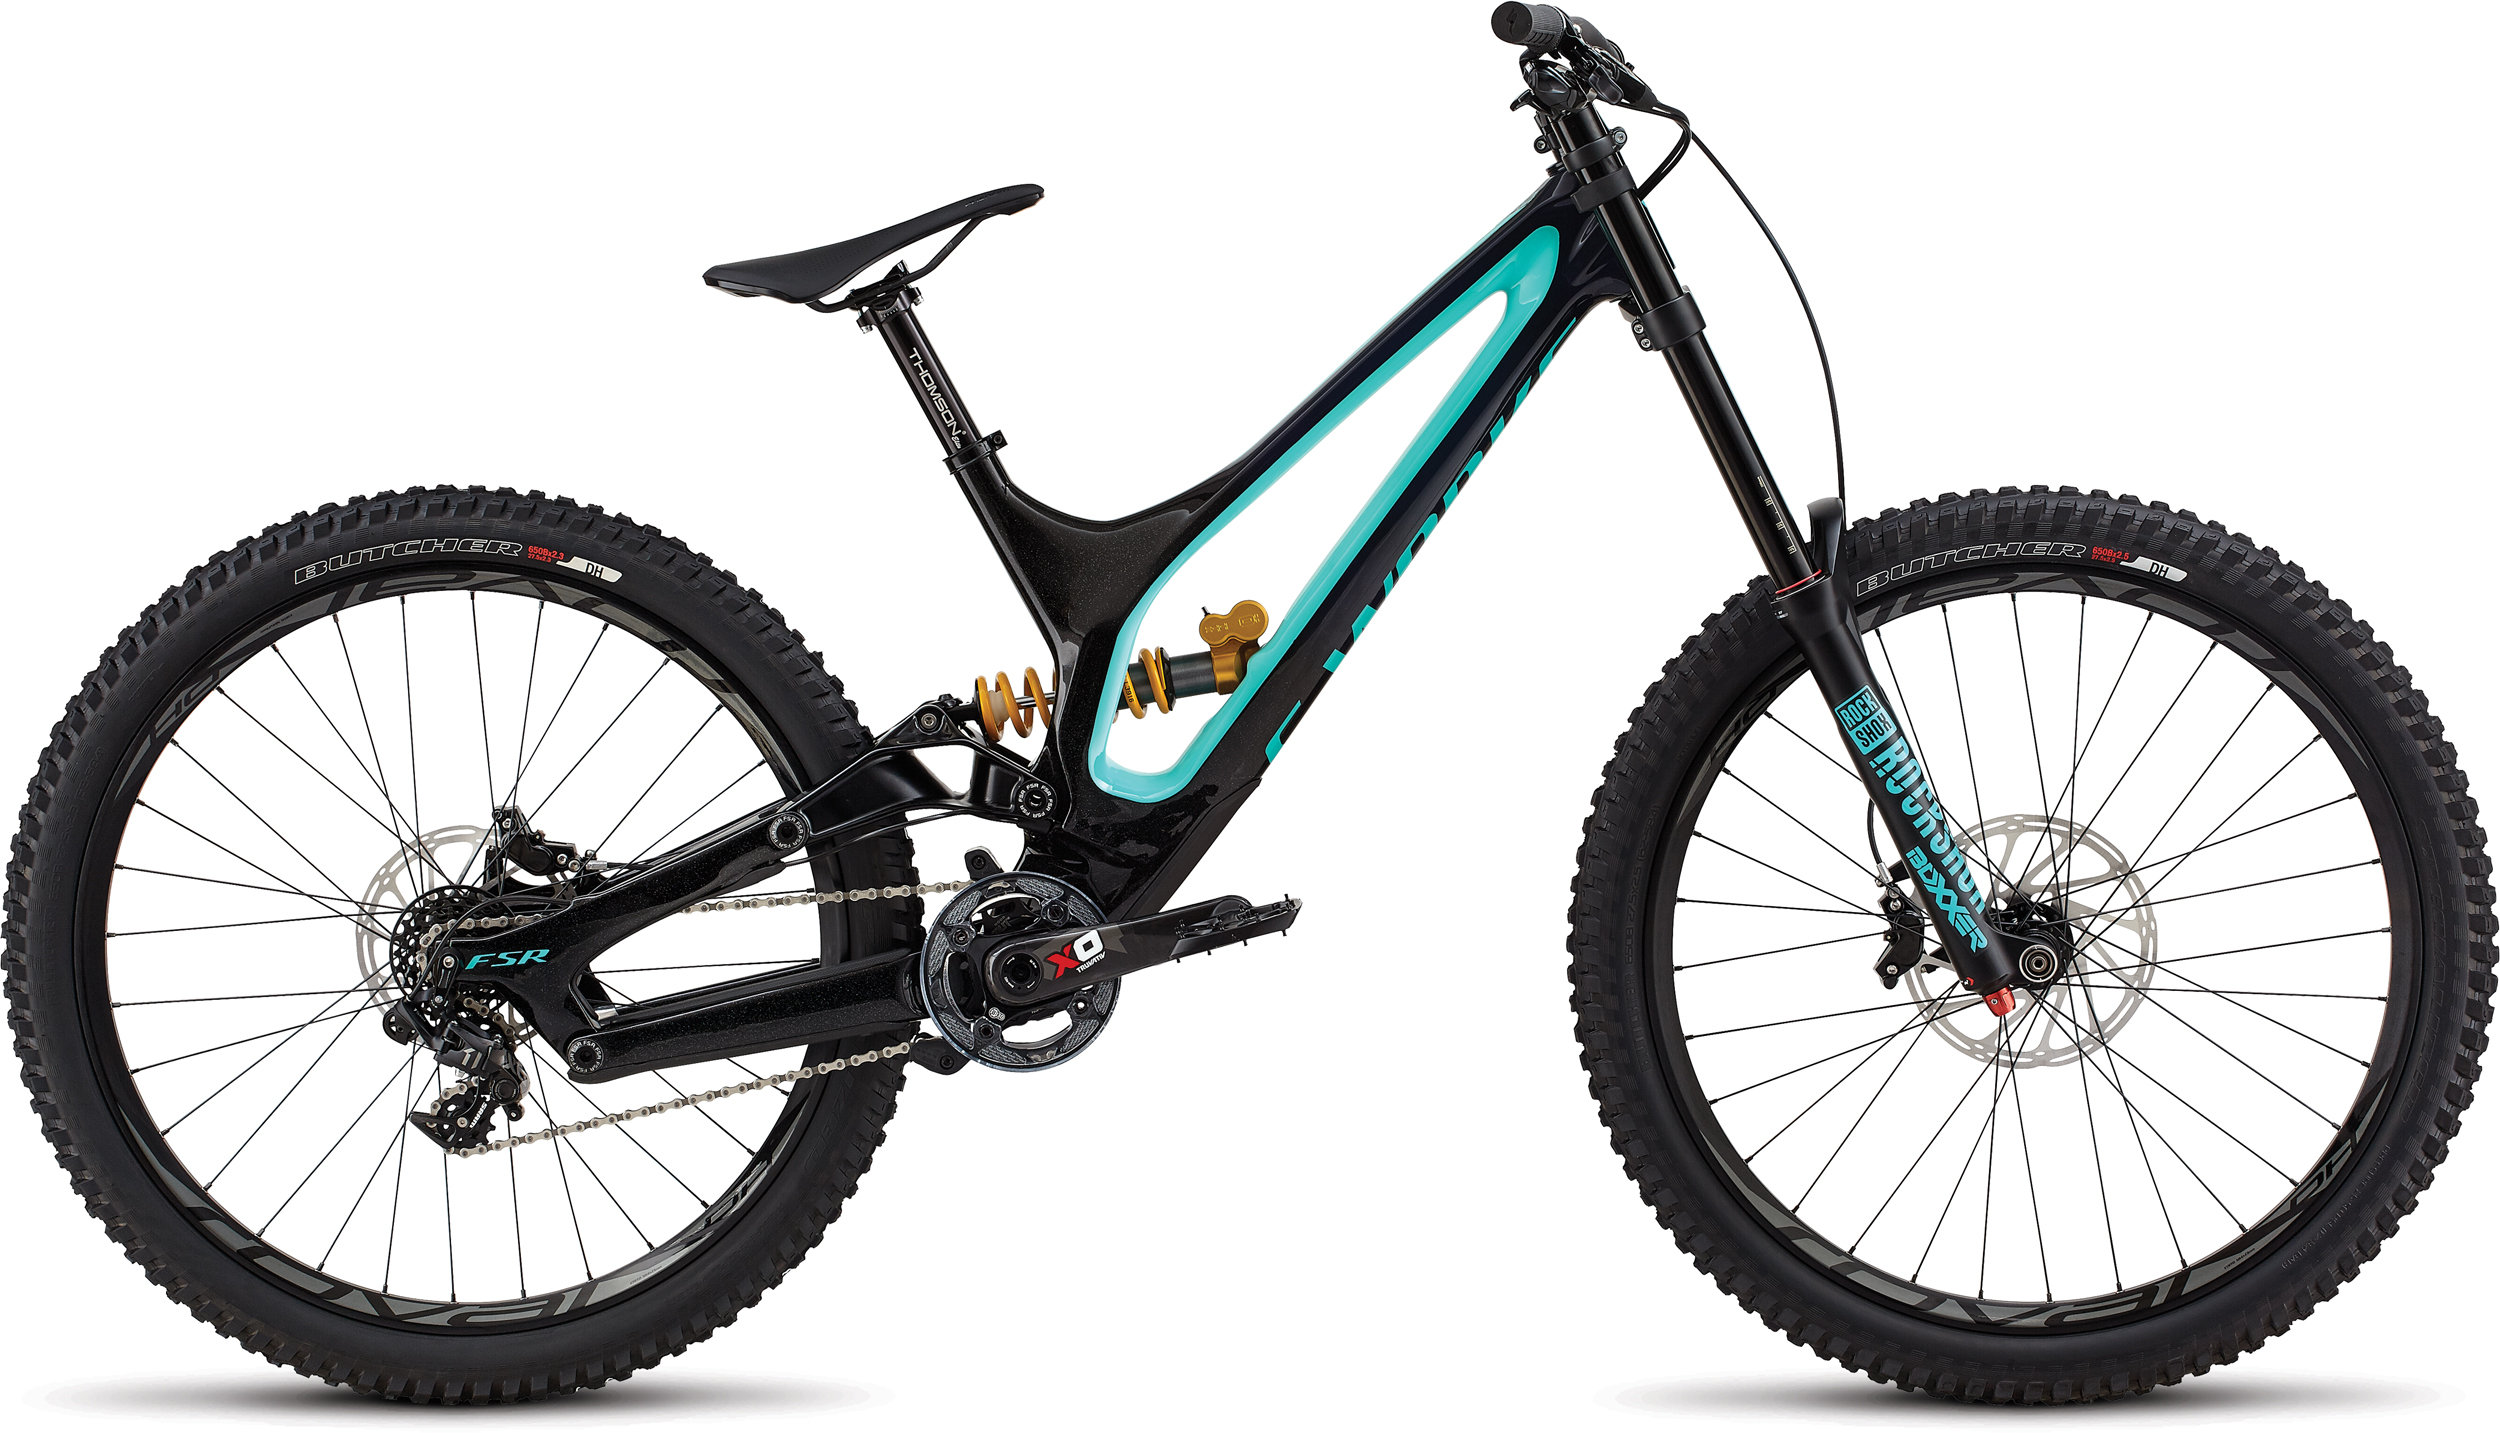 Specialized S-Works Demo 8 GLOSS BLUE TINT CARBON / ACID MINT / COSMIC BLACK LONG - Alpha Bikes